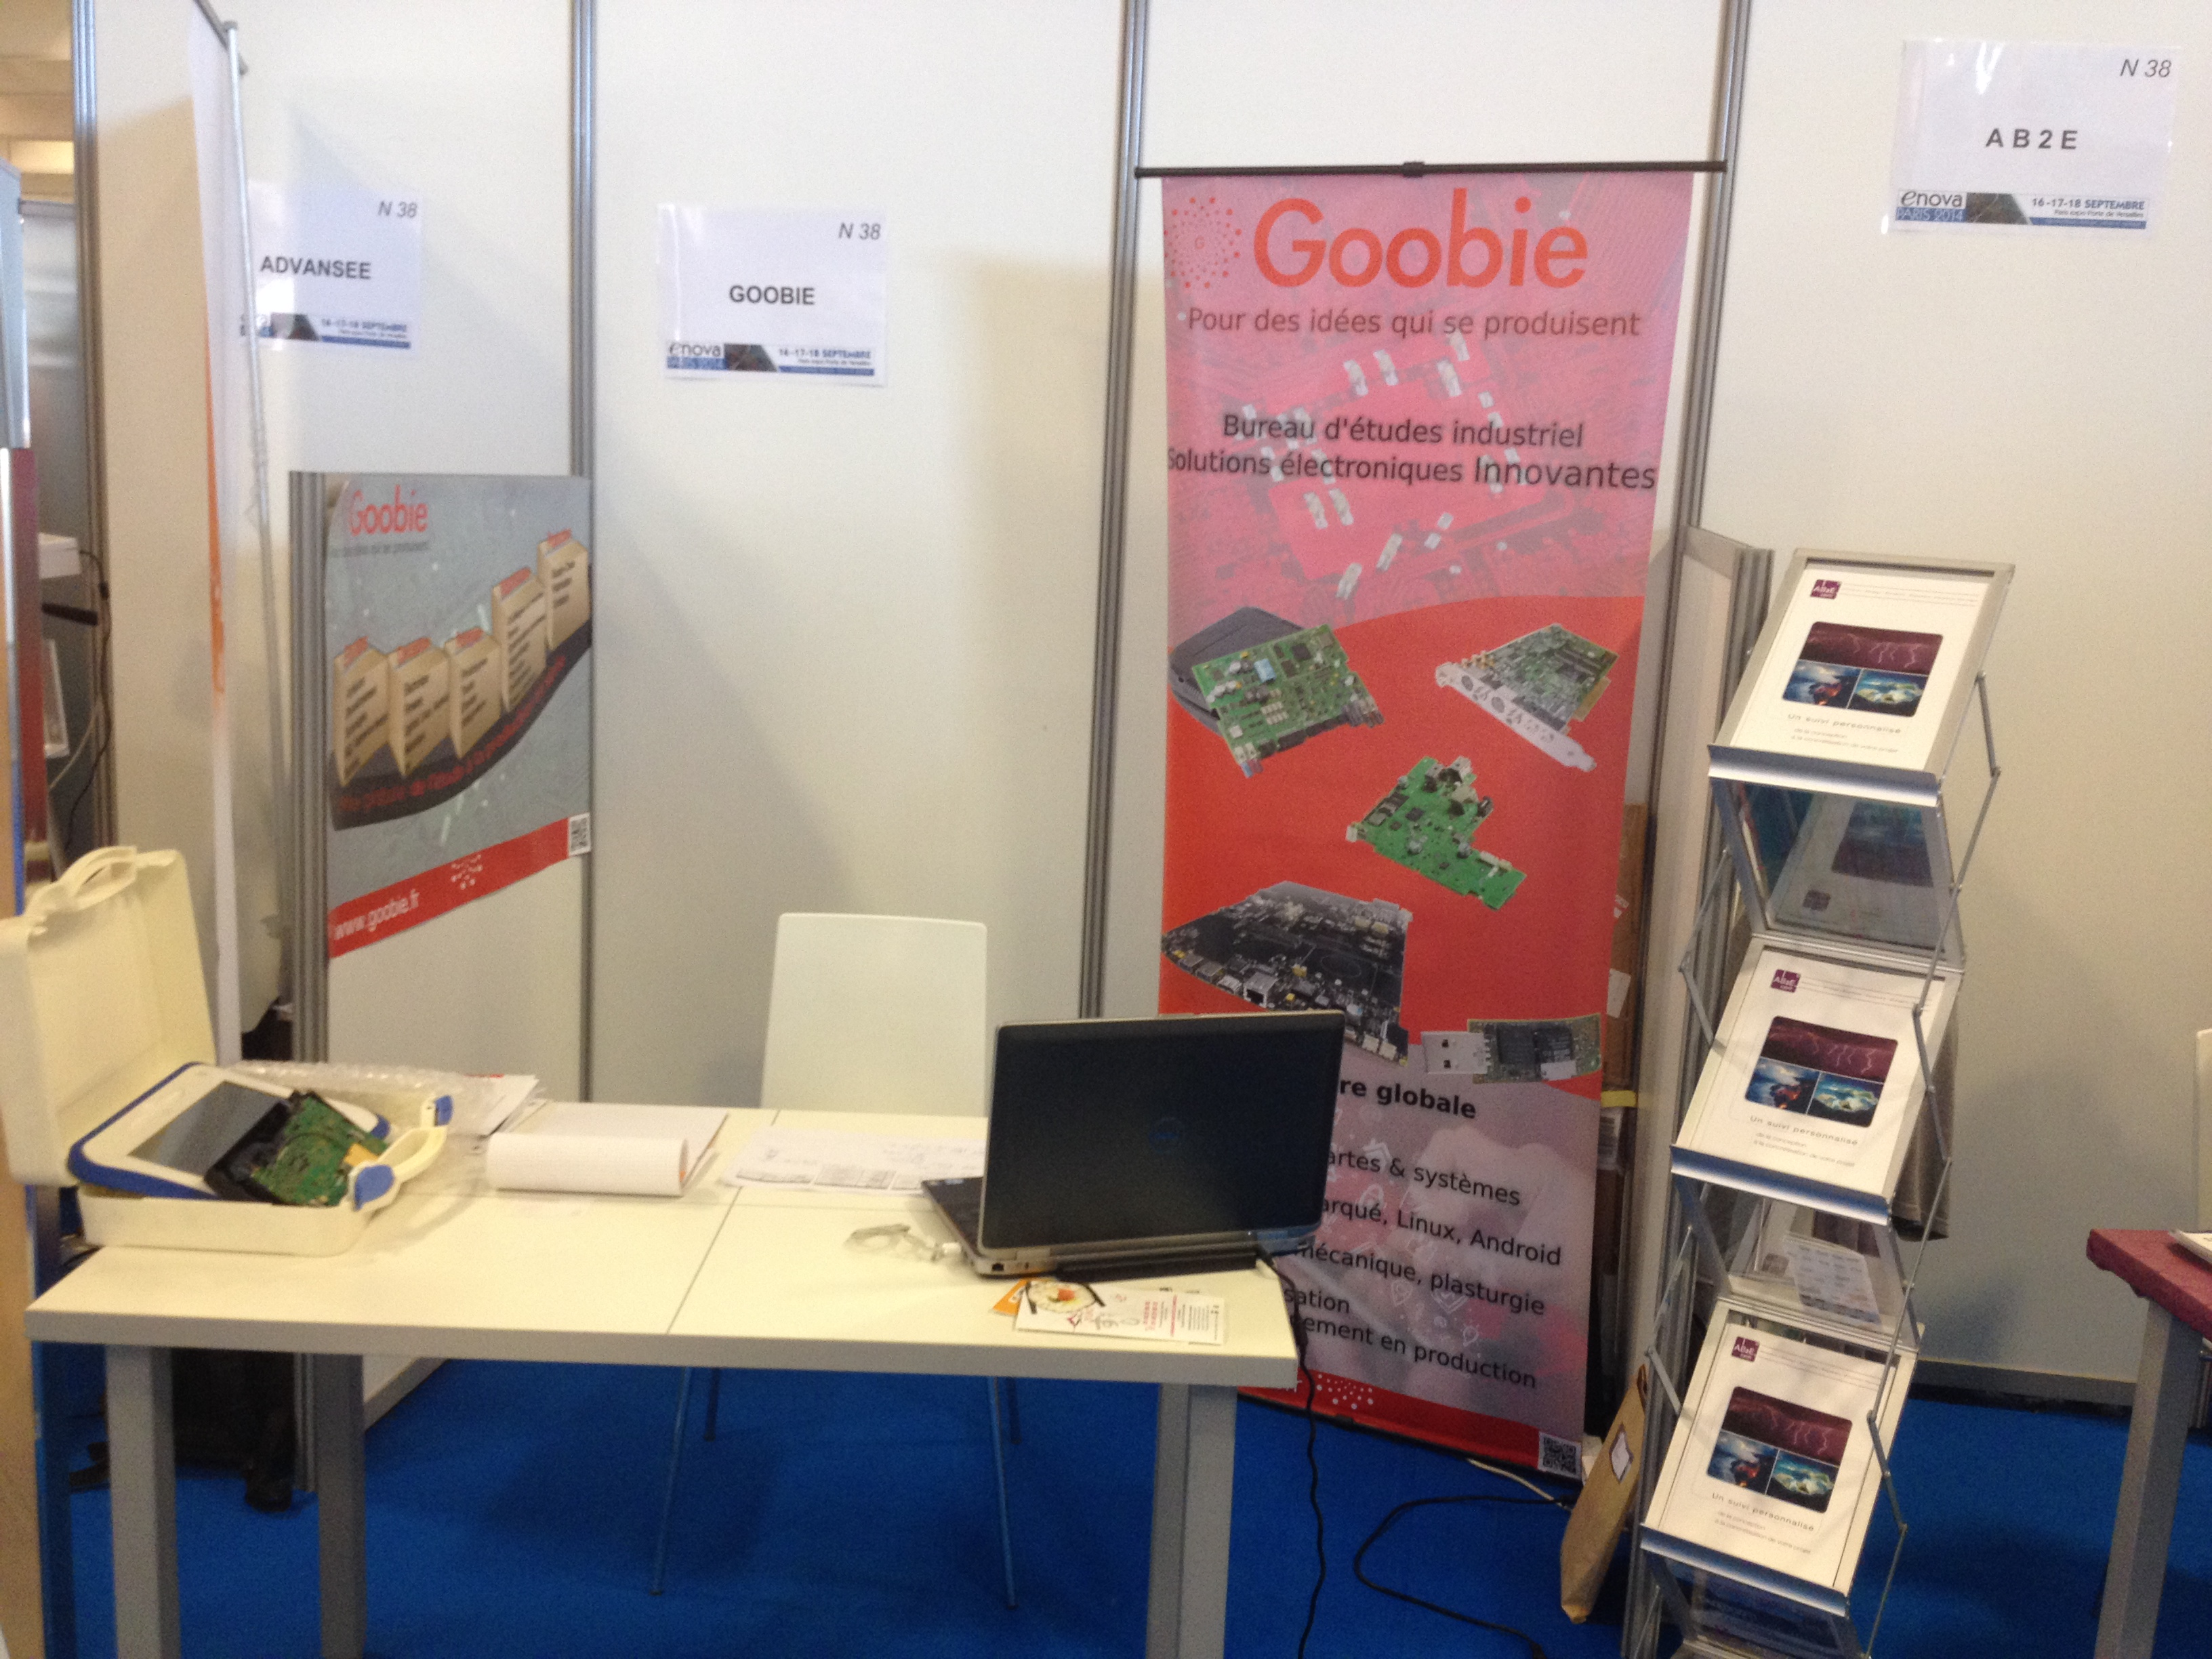 News goobie for Porte de versailles salon expo